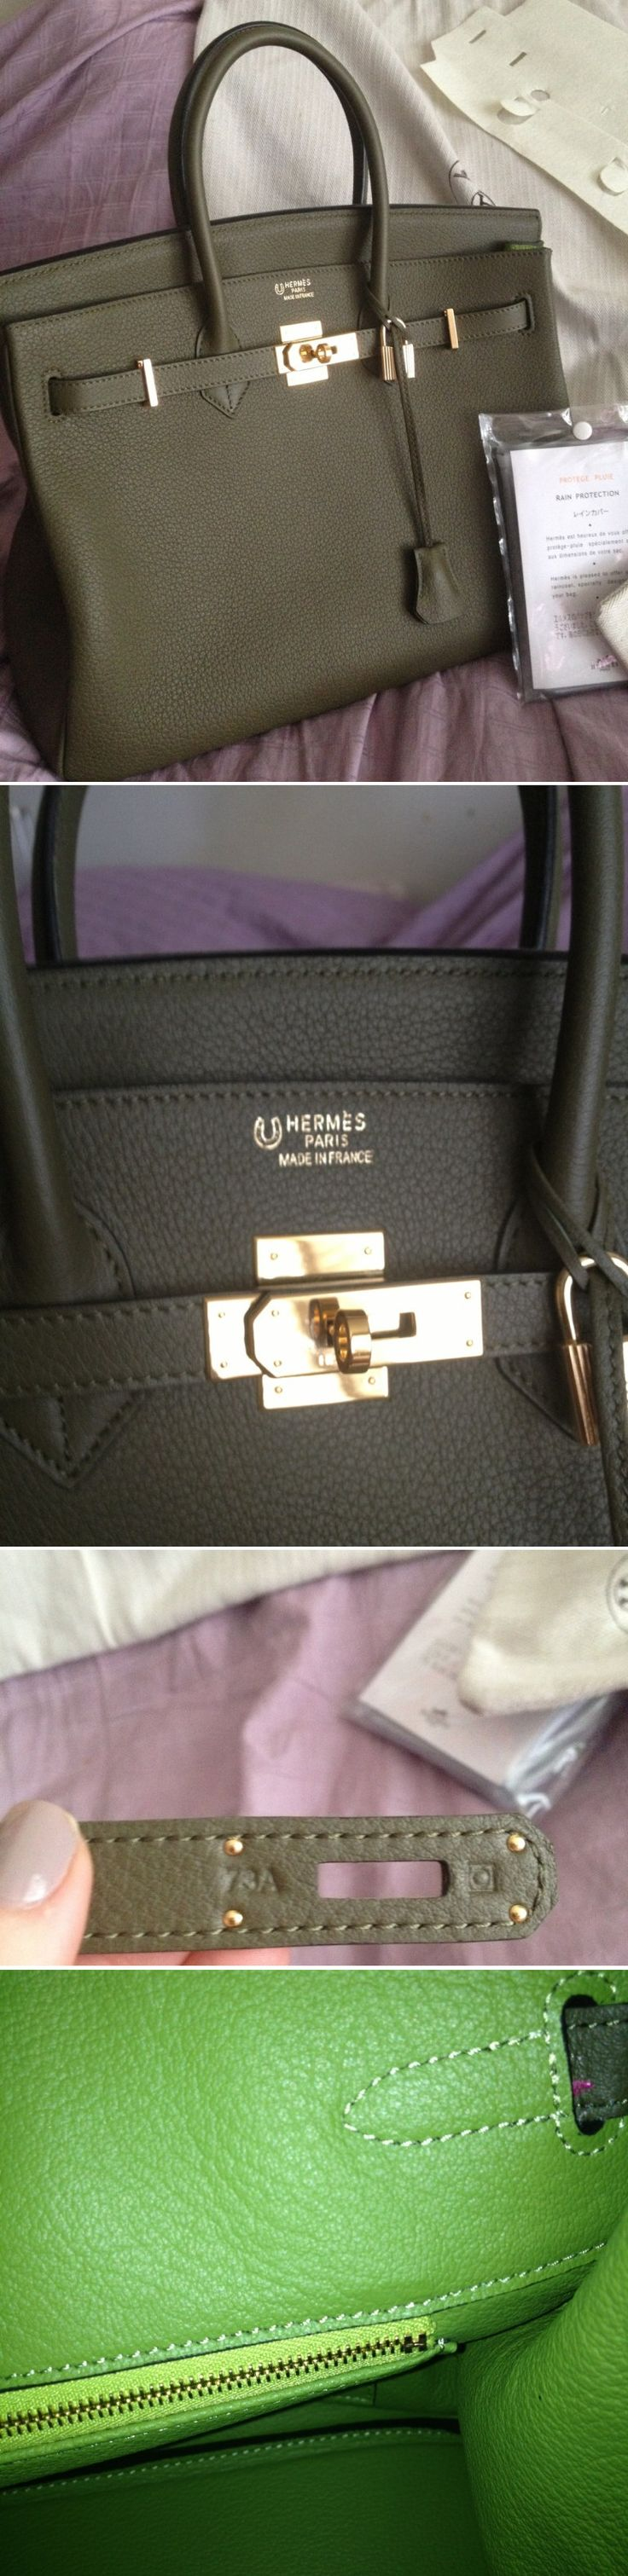 Is this an authentic or fake hermes birkin are you good at authenticating bags